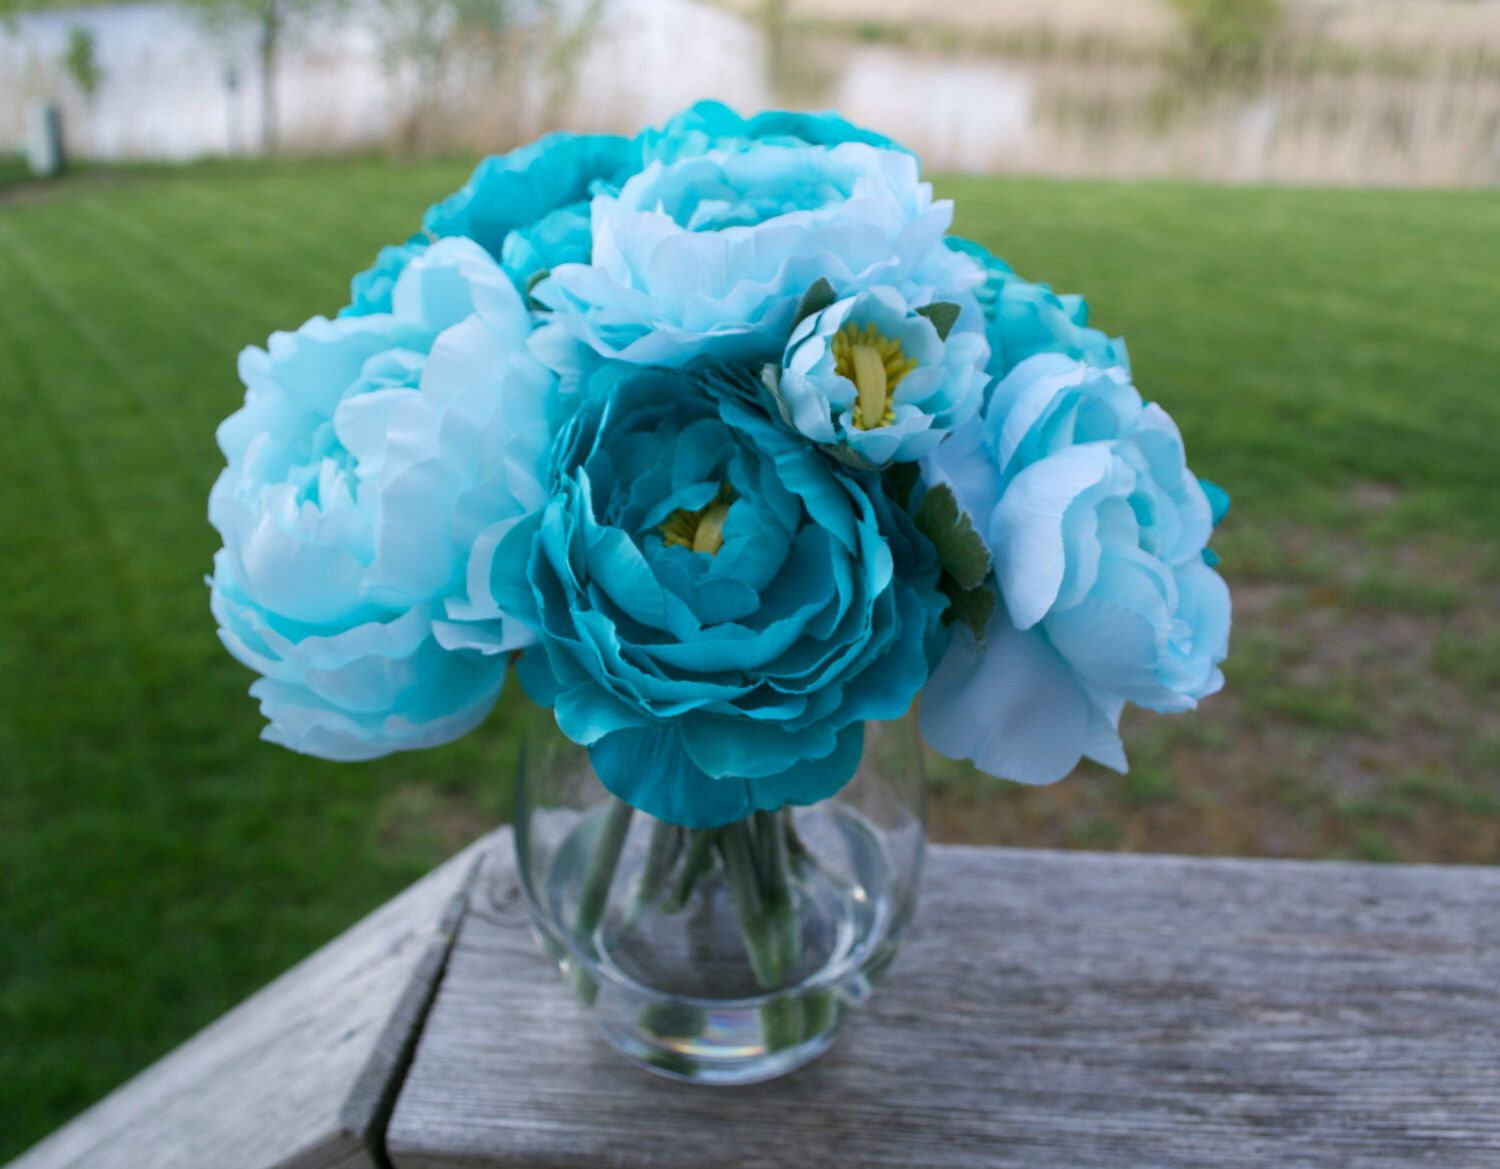 Turquoise teal peonies in glass vase with faux water acrylic turquoise teal peonies in glass vase with faux water acrylic water luxury flowers blue flowers reviewsmspy